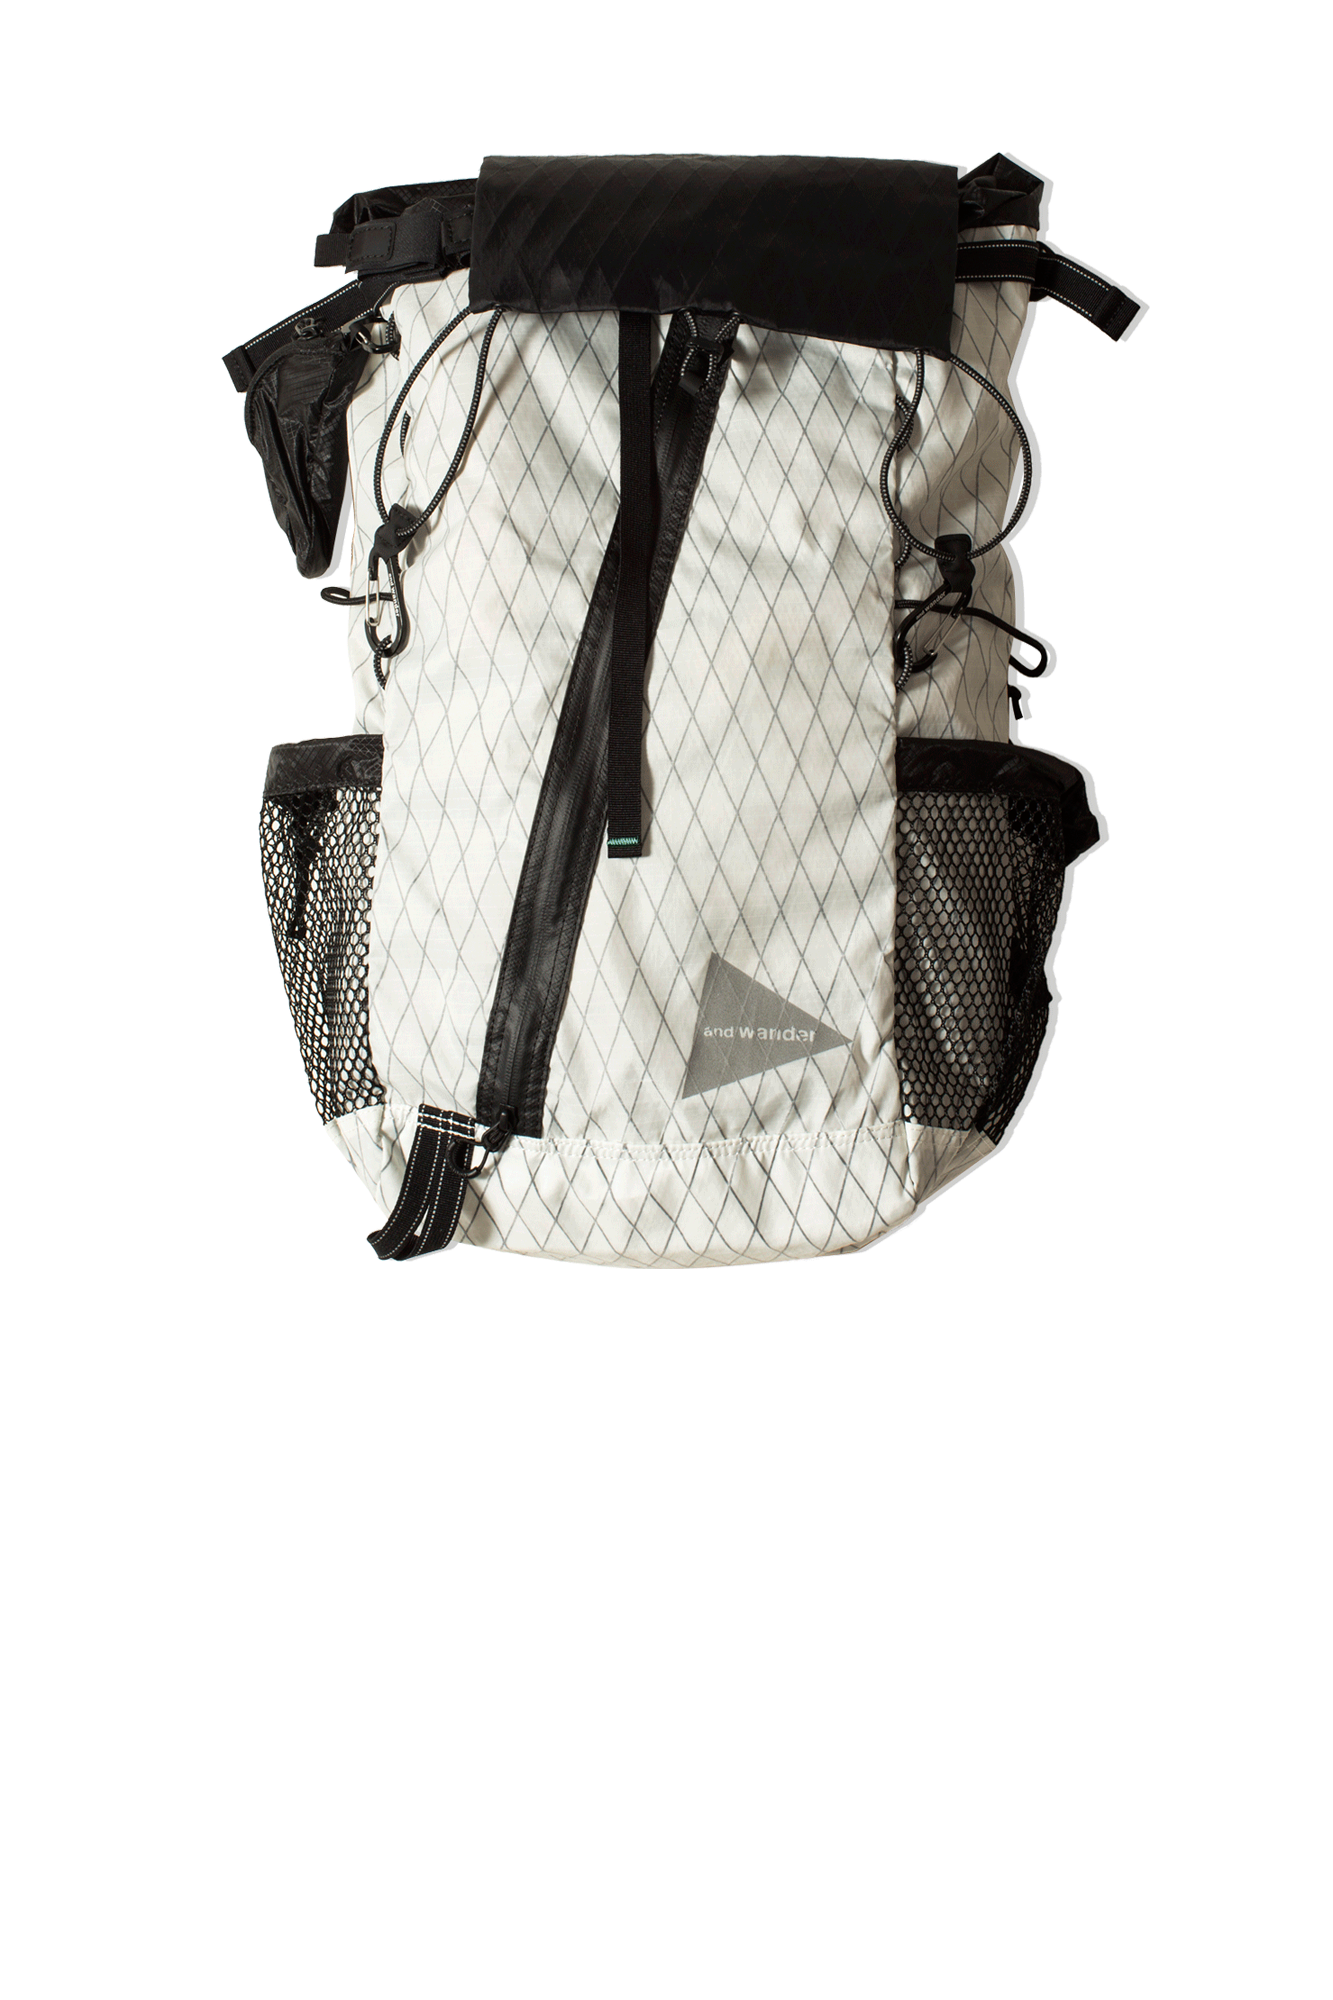 And Wander Backpacks X-Pac 30L Backpack White 5740975008#000#WHT#OS - One Block Down